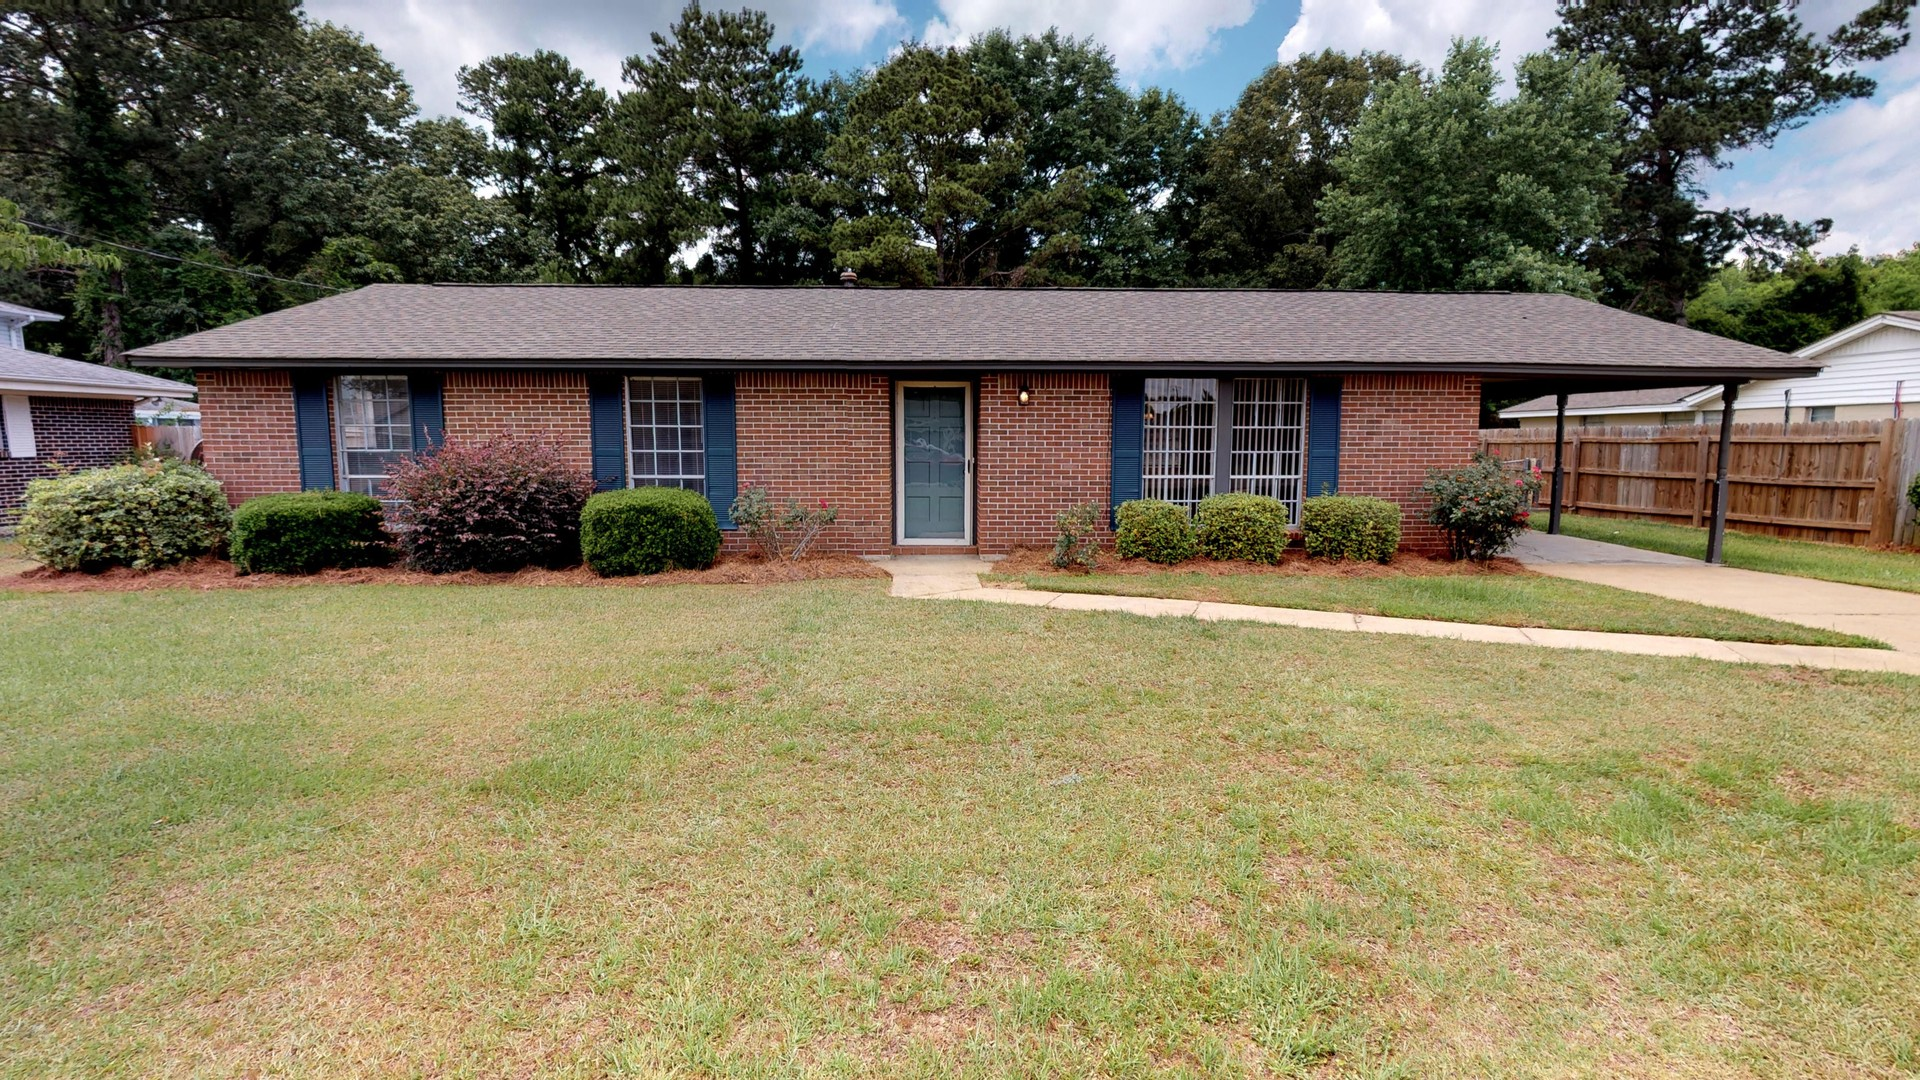 FOR RENT IN PRATTVILLE! 3 BED 2 BATH AT 213 STEWART STREET